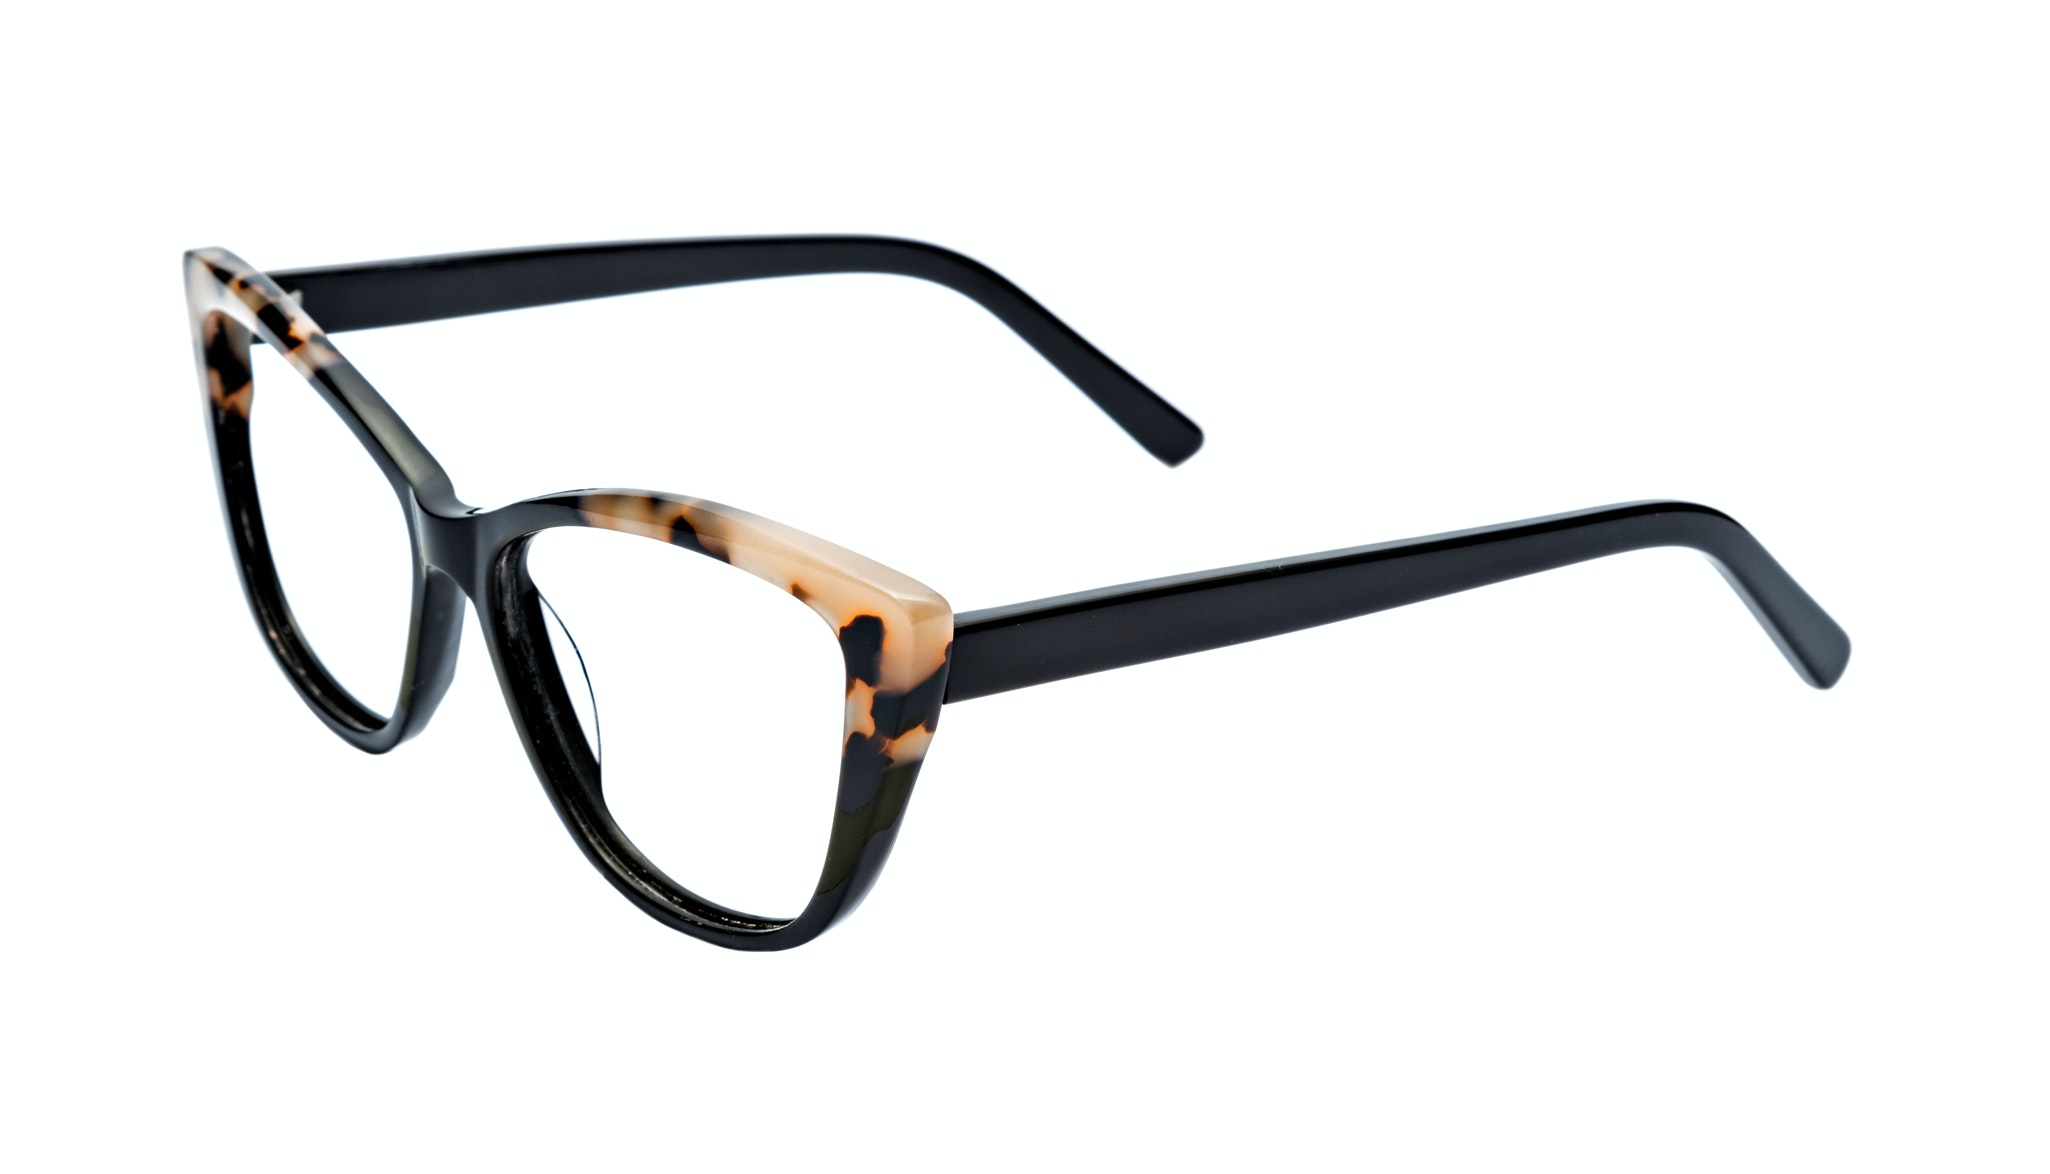 Affordable Fashion Glasses Cat Eye Daring Cateye Eyeglasses Women Dolled Up Ebony Granite Tilt